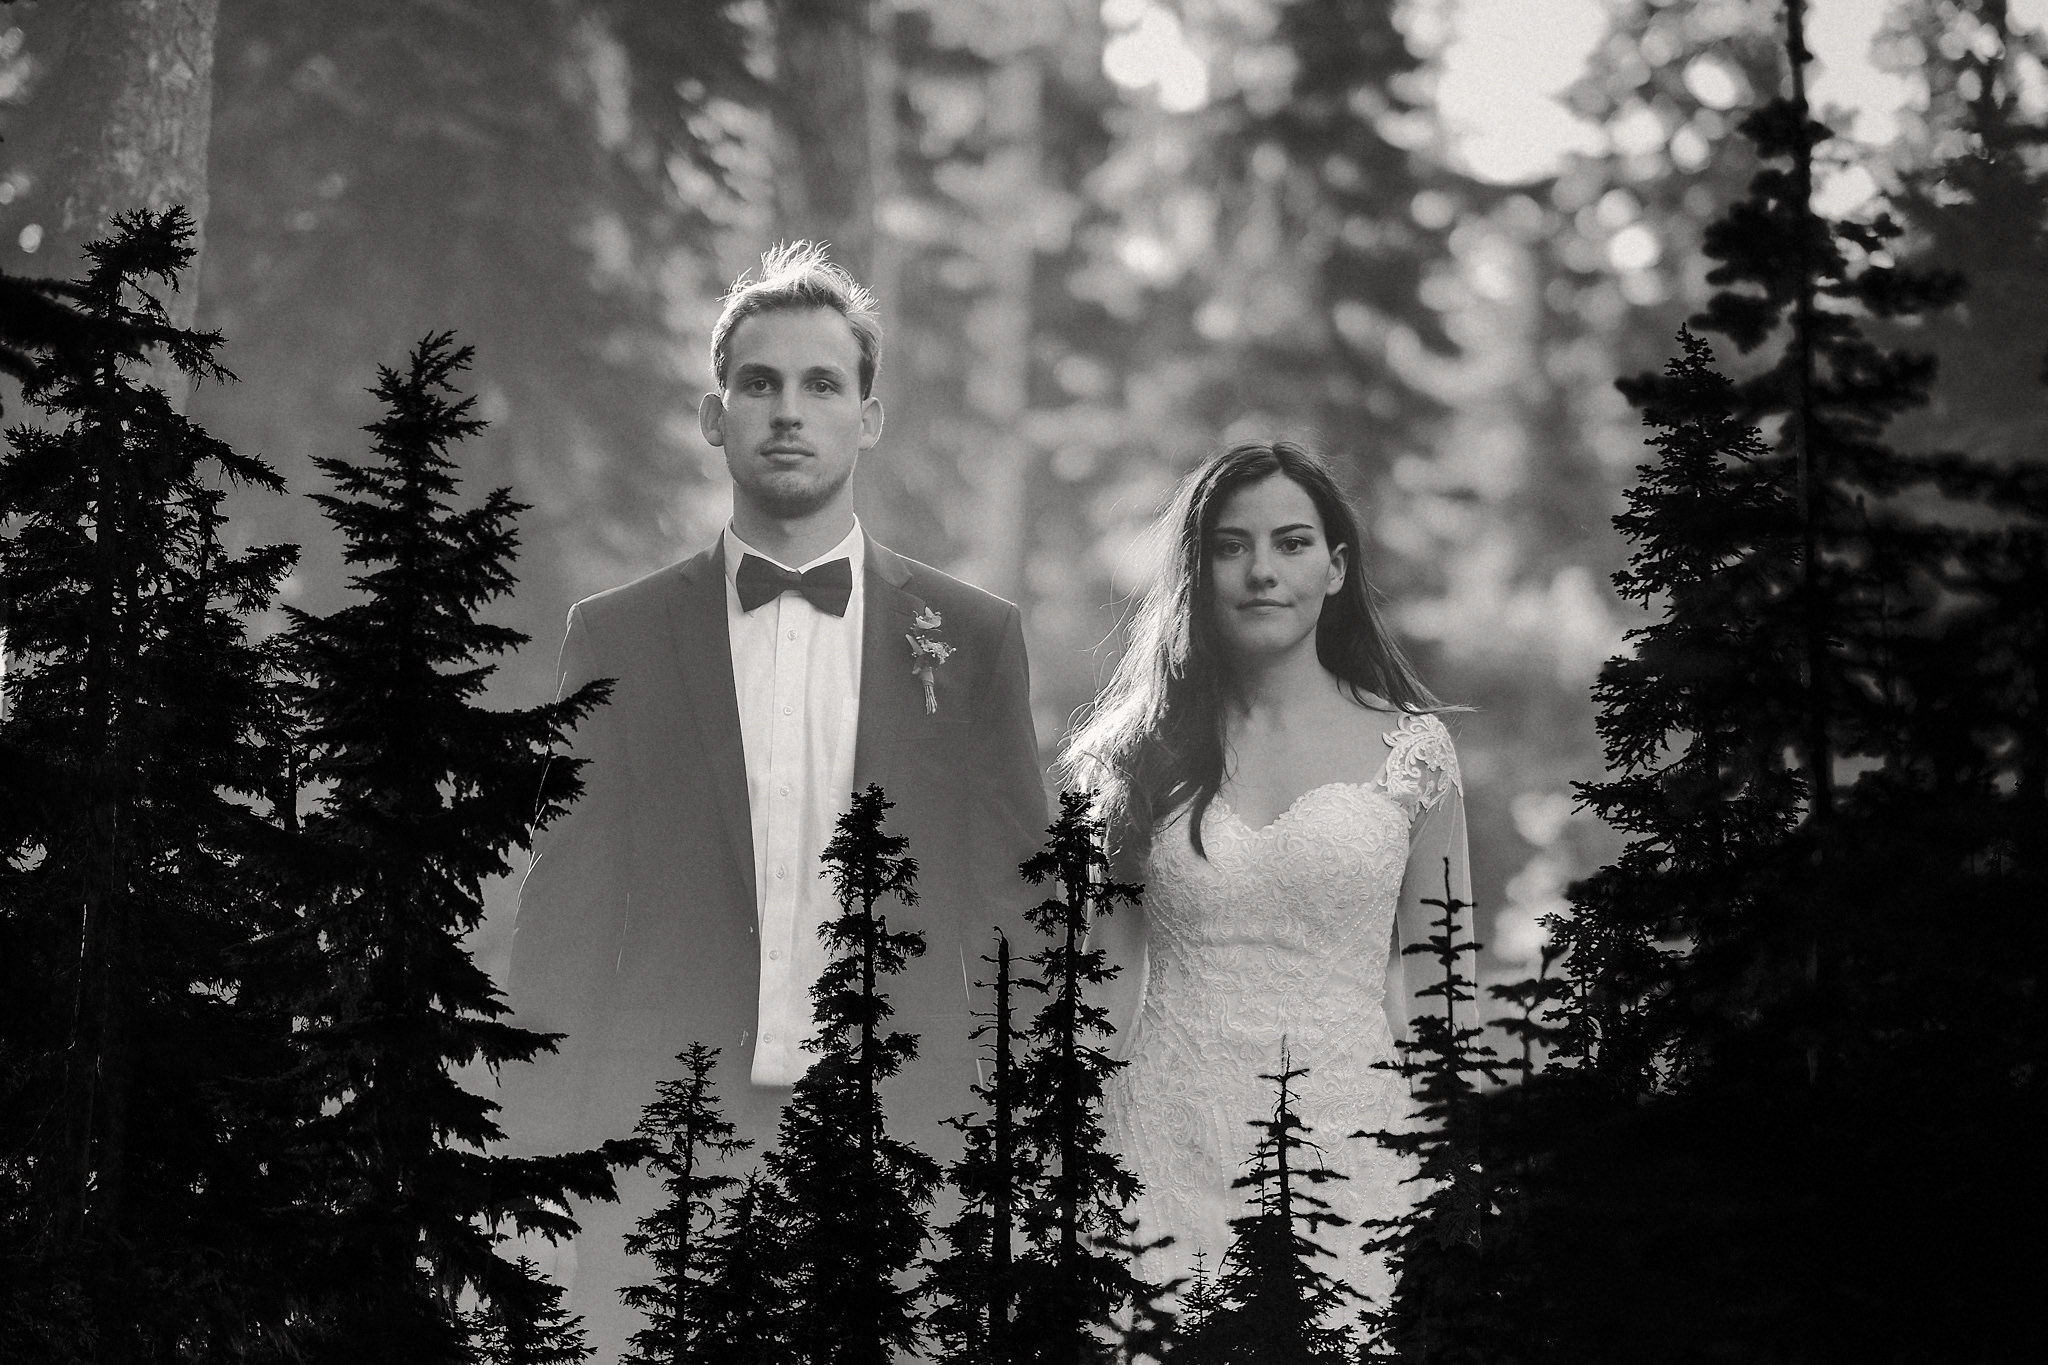 intimate wedding adventure elopement cascade mountains double exposure seattle sunset portrait photo